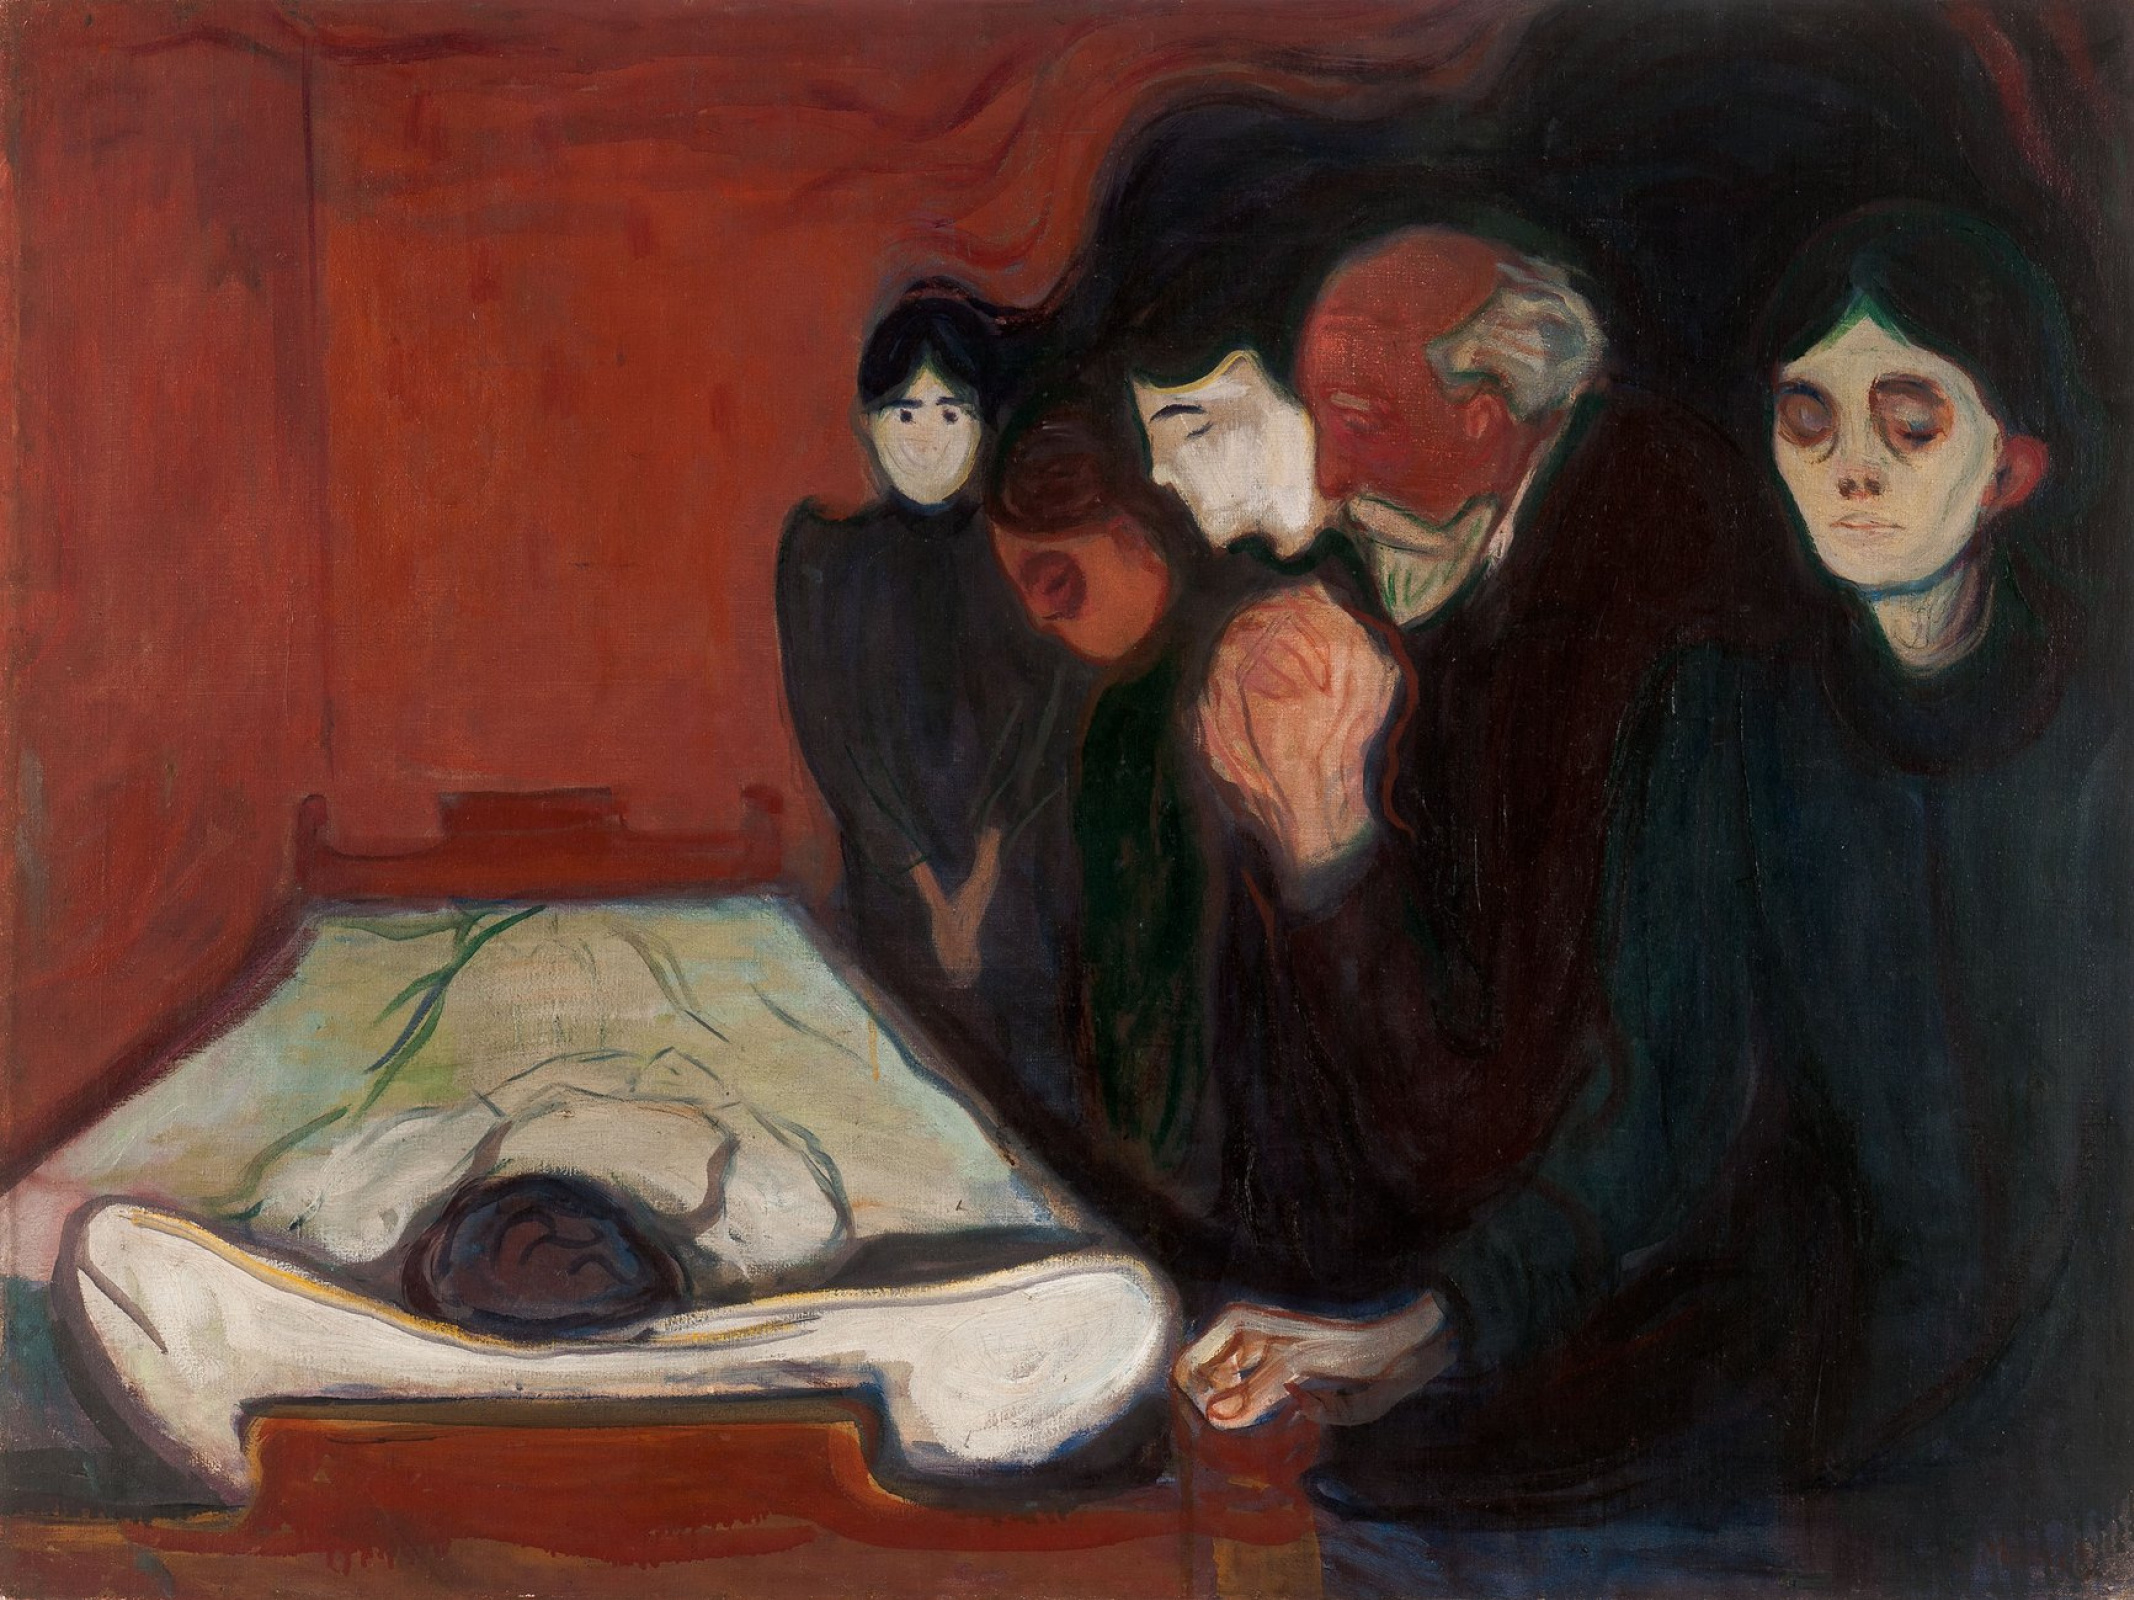 Edvard Munch. At the deathbed